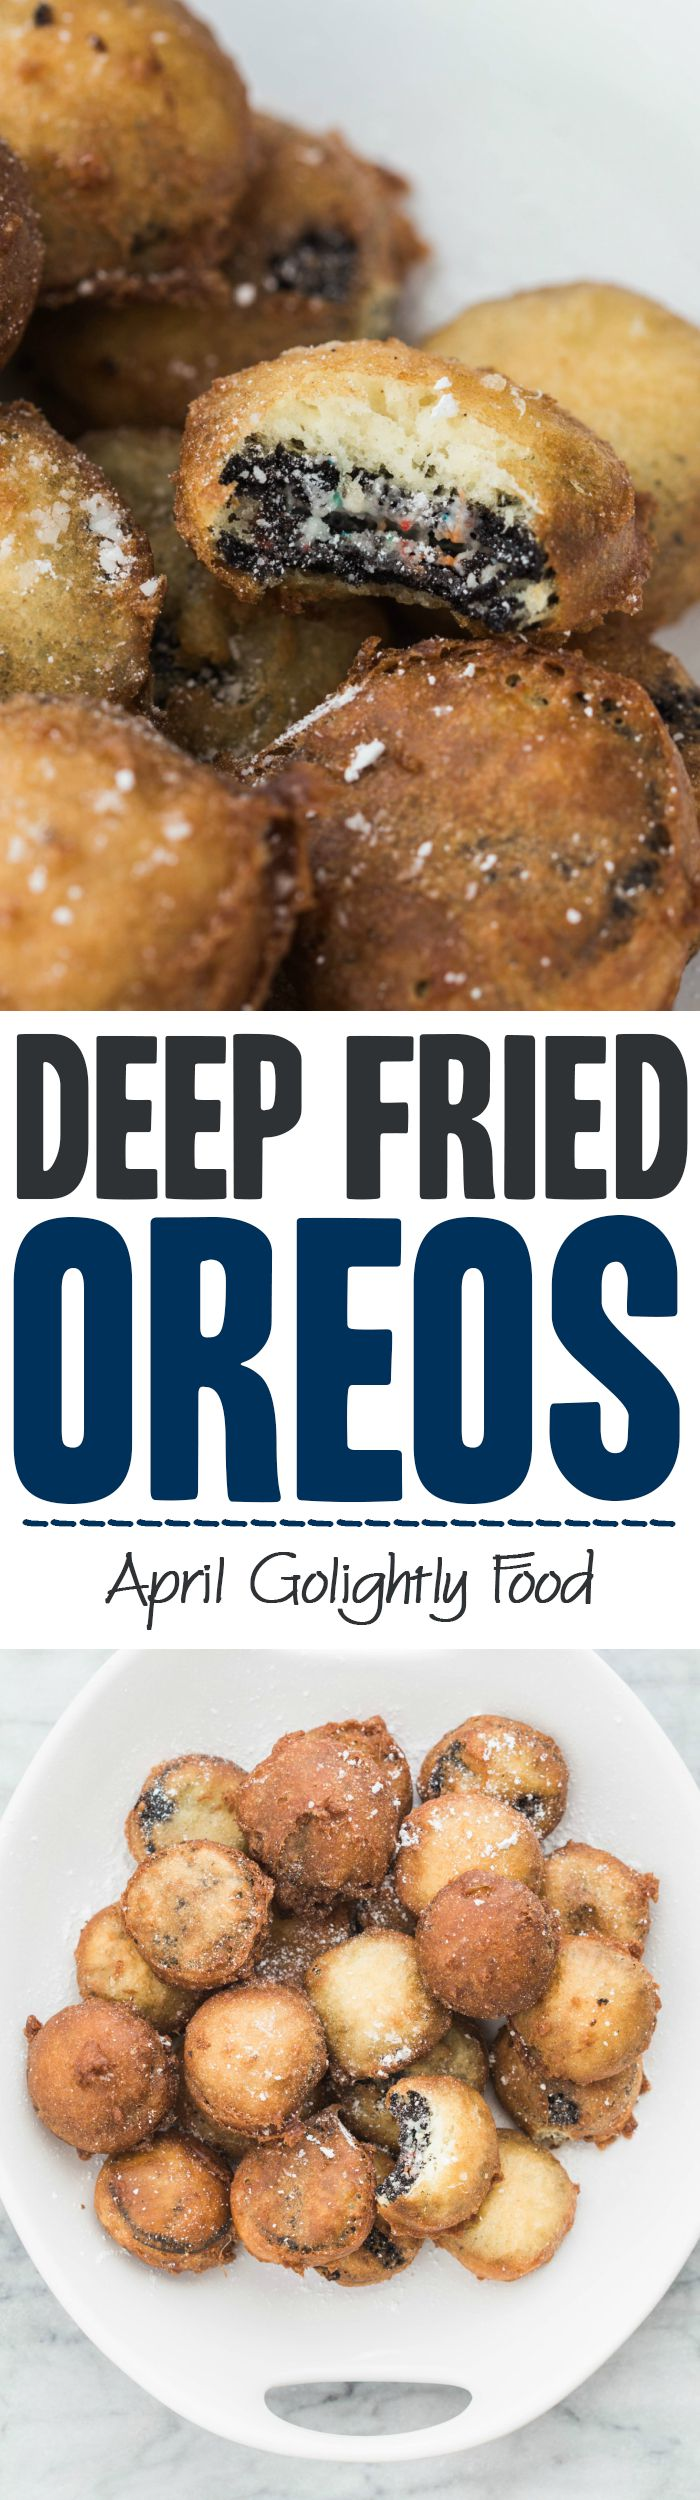 Easy Deep Fried Oreos Recipe - perfect to bring to bring as a dessert to your friend's birthday party - perfect desserts for Oreo lovers